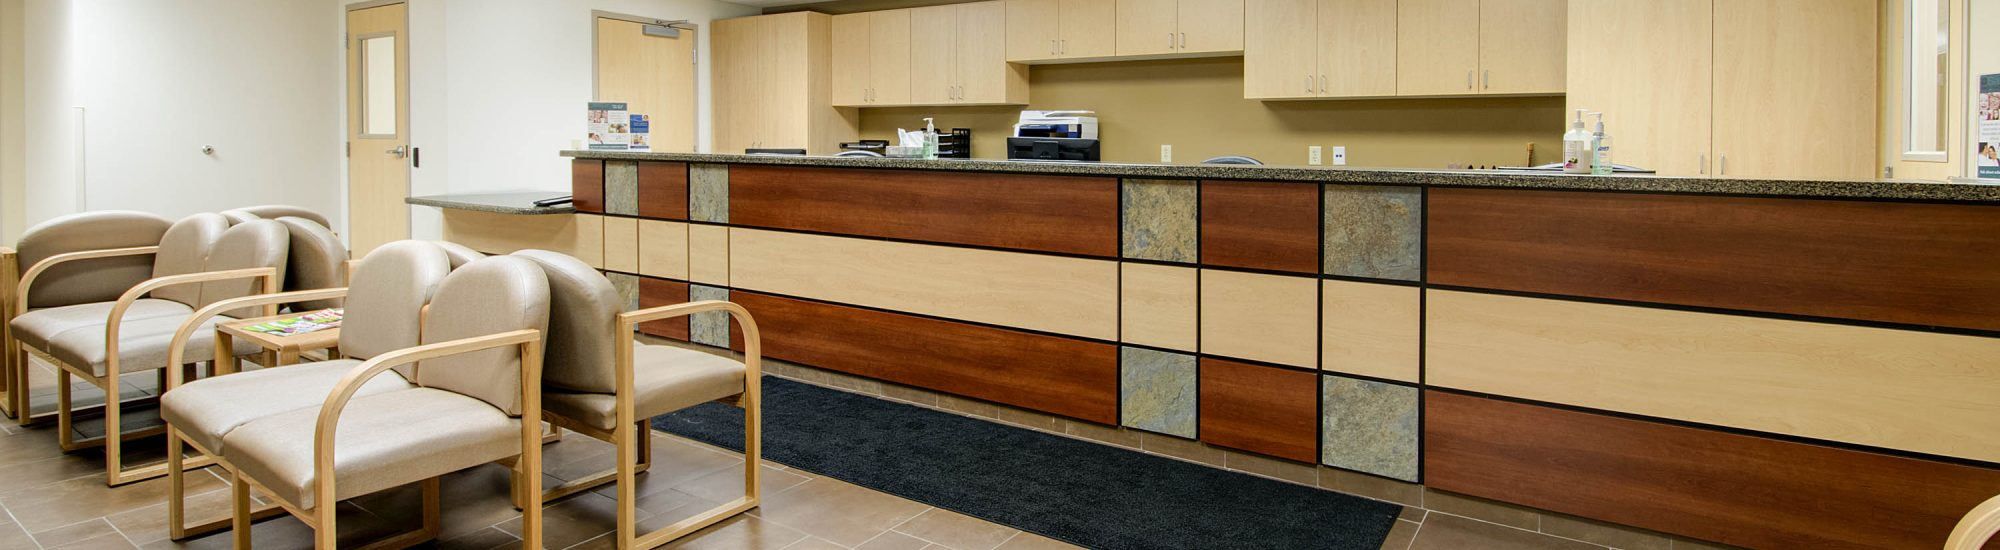 Fort Collins Salud lobby